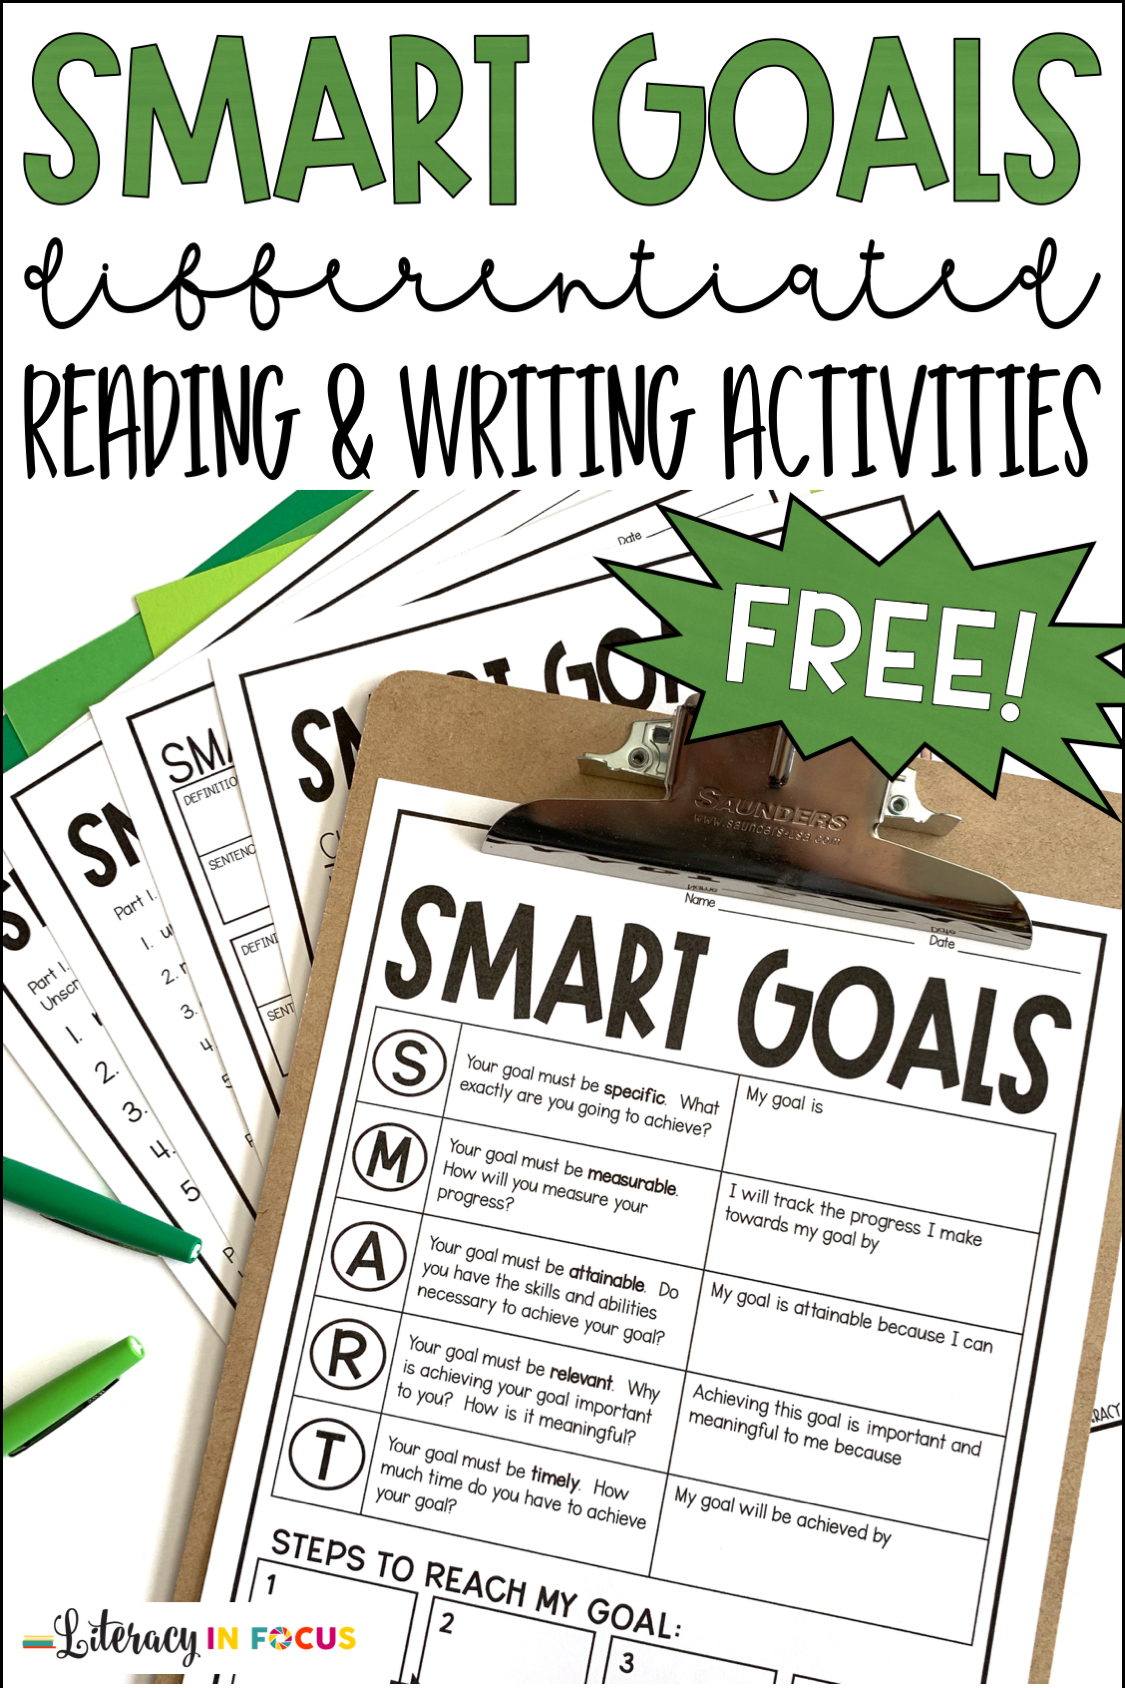 Smart Goals Template And Activities